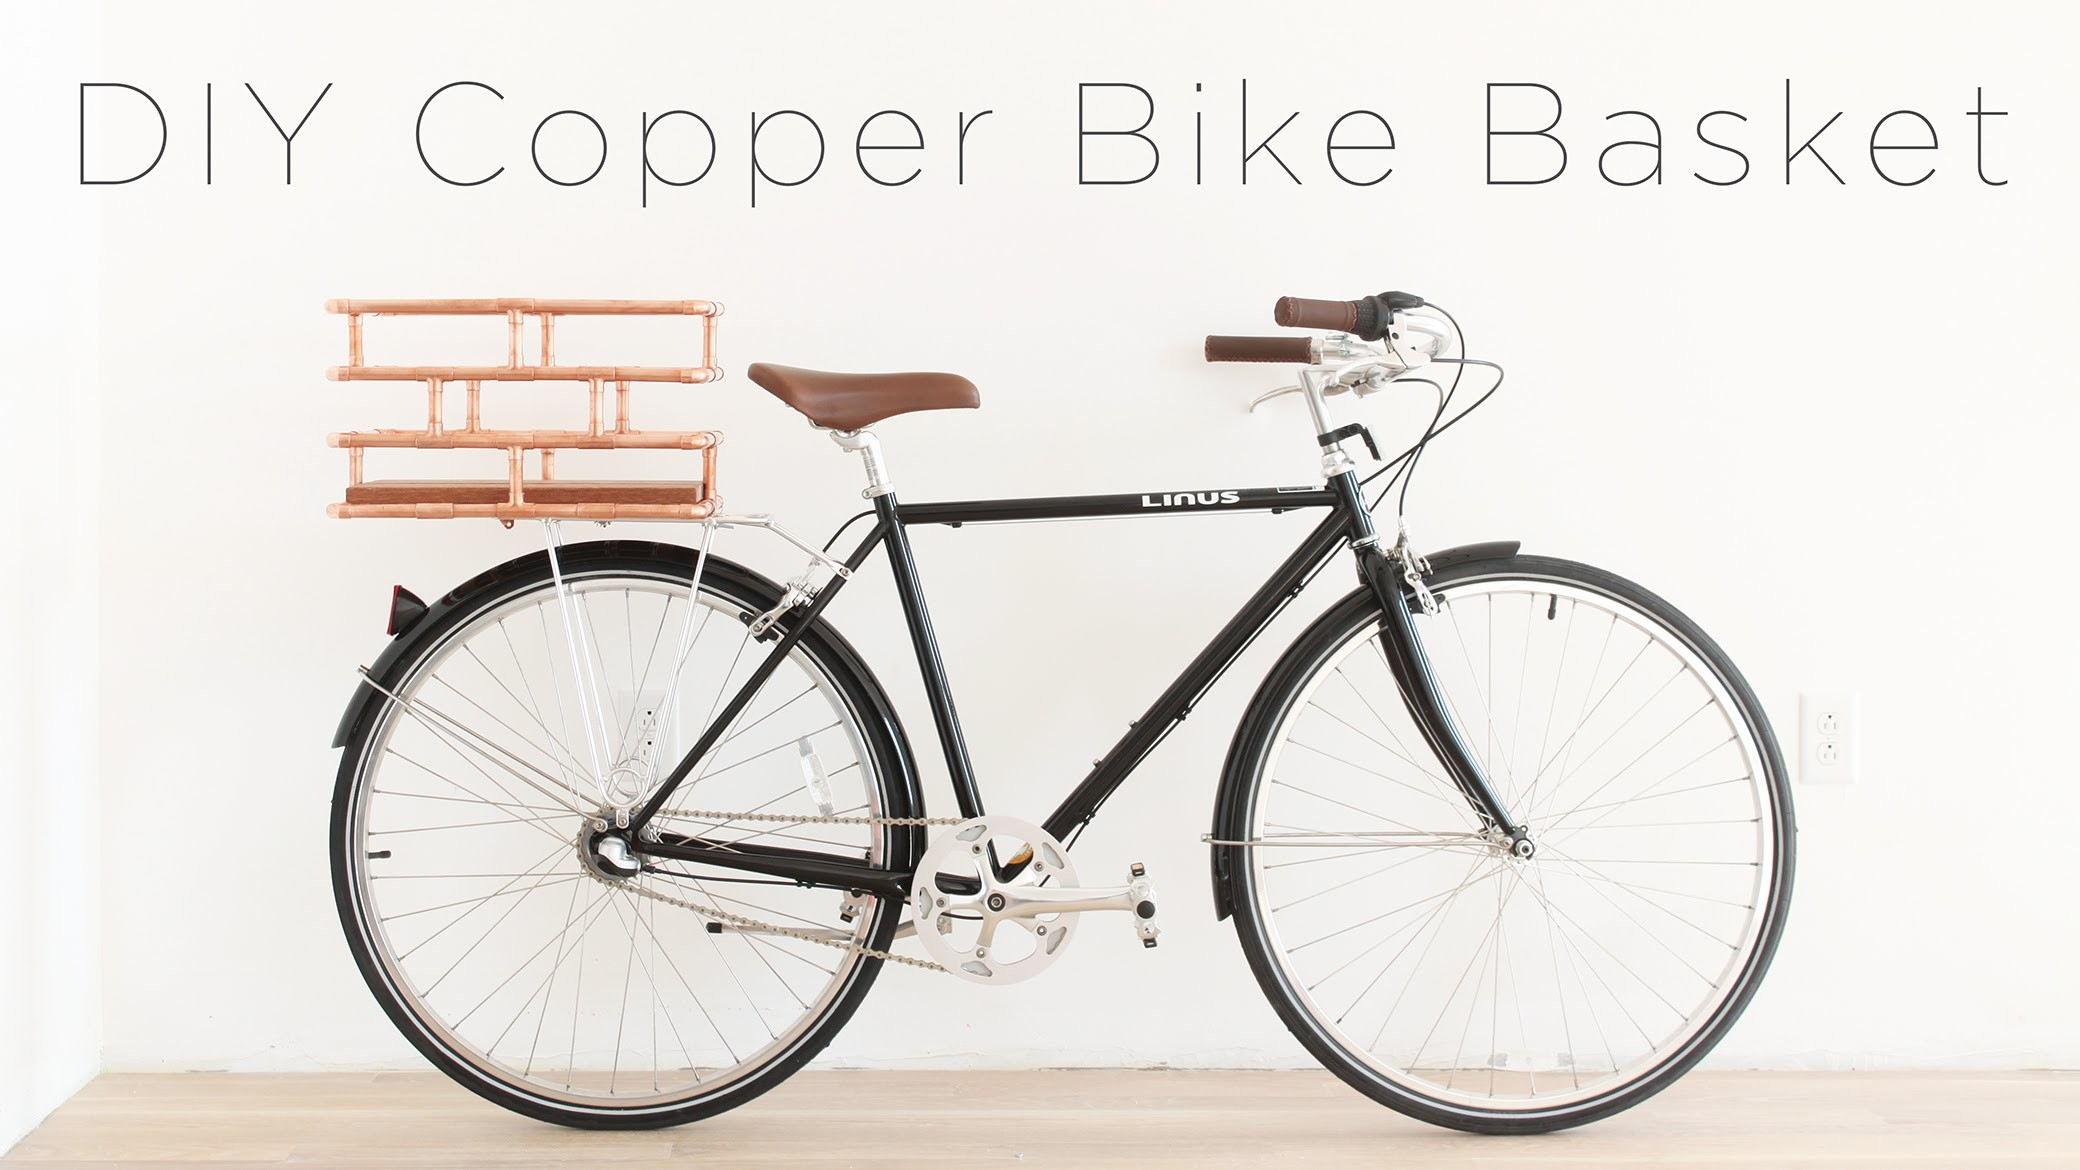 DIY Copper Bike Basket